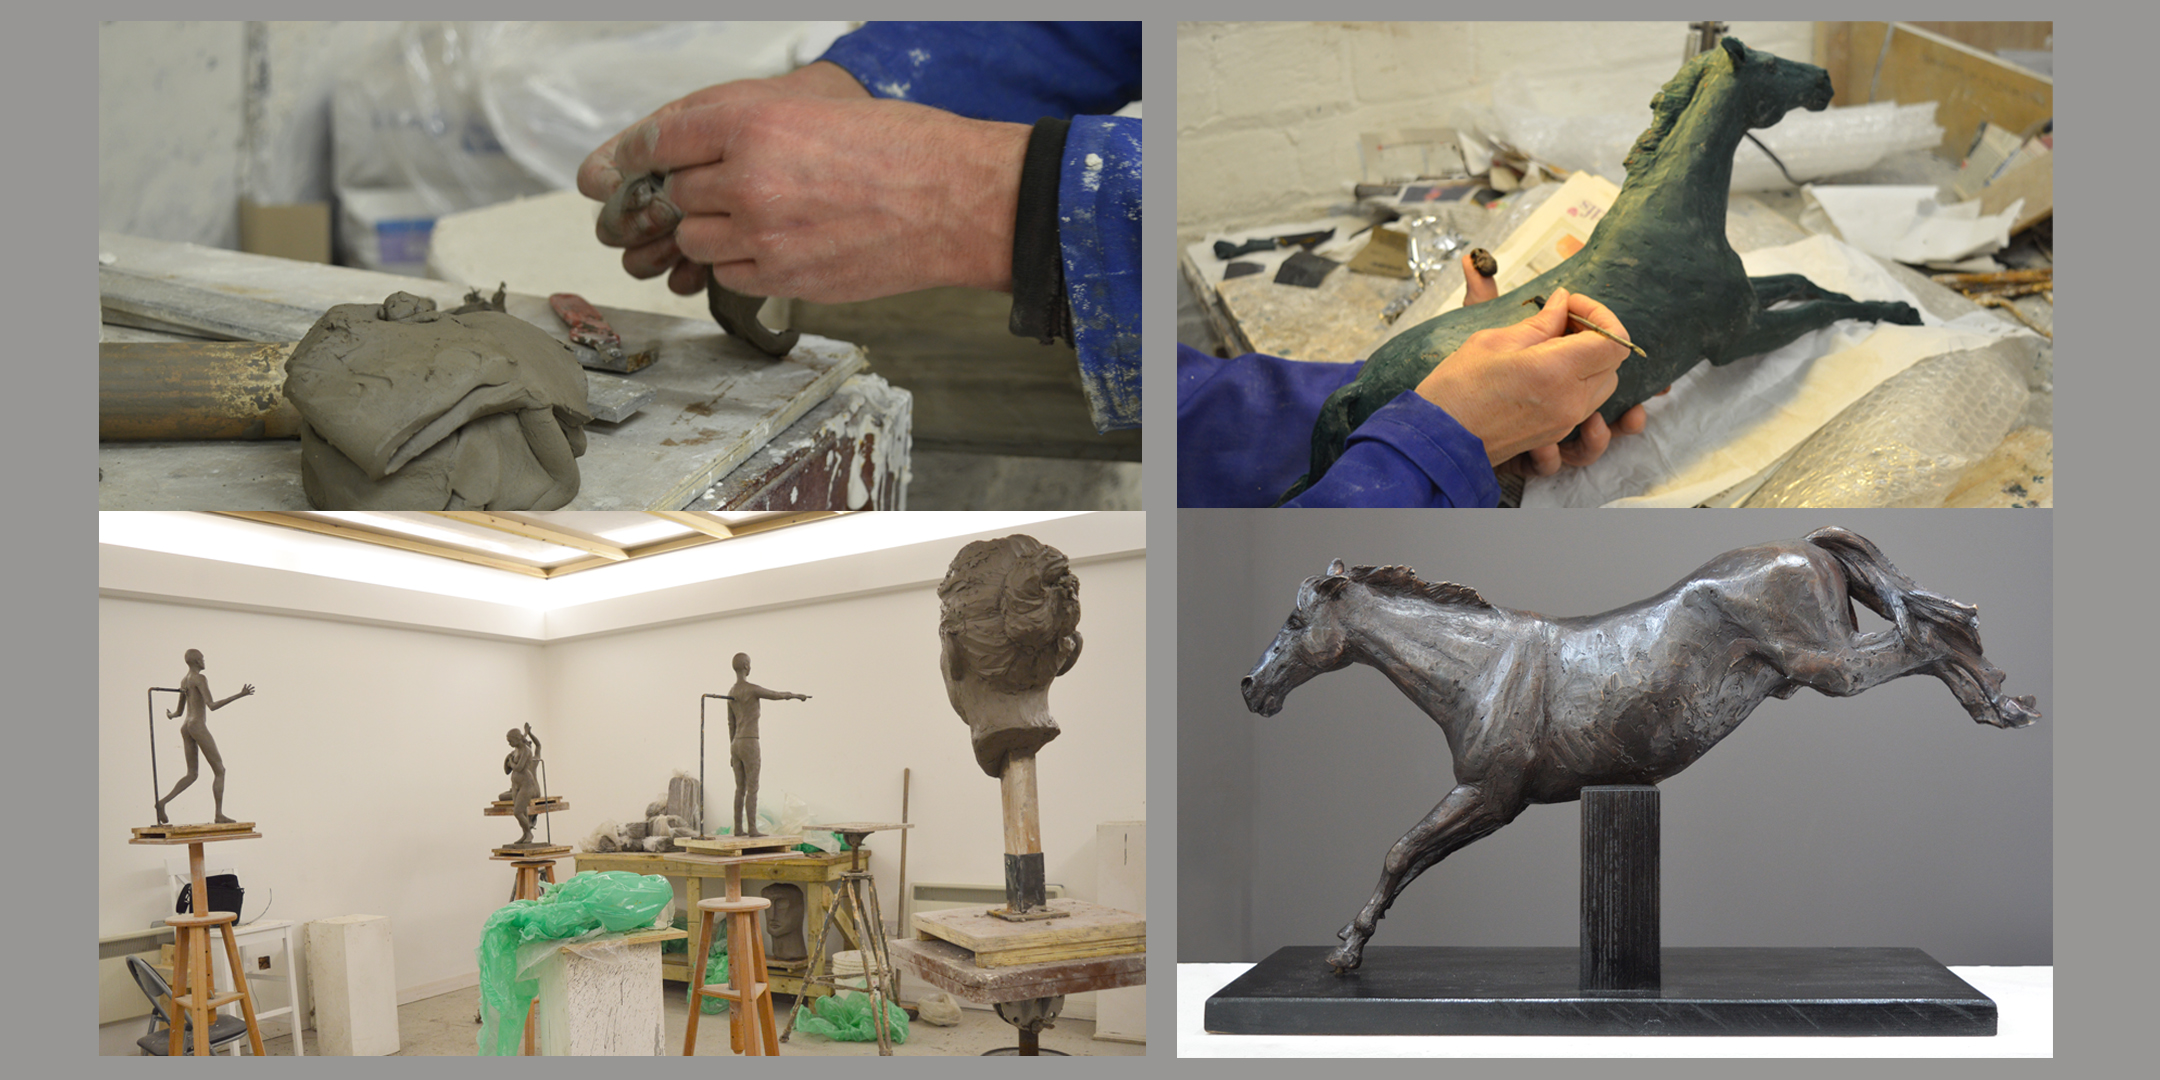 Clay modelling Evening Class with Sculptor Alan Beattie Herriot Image #0